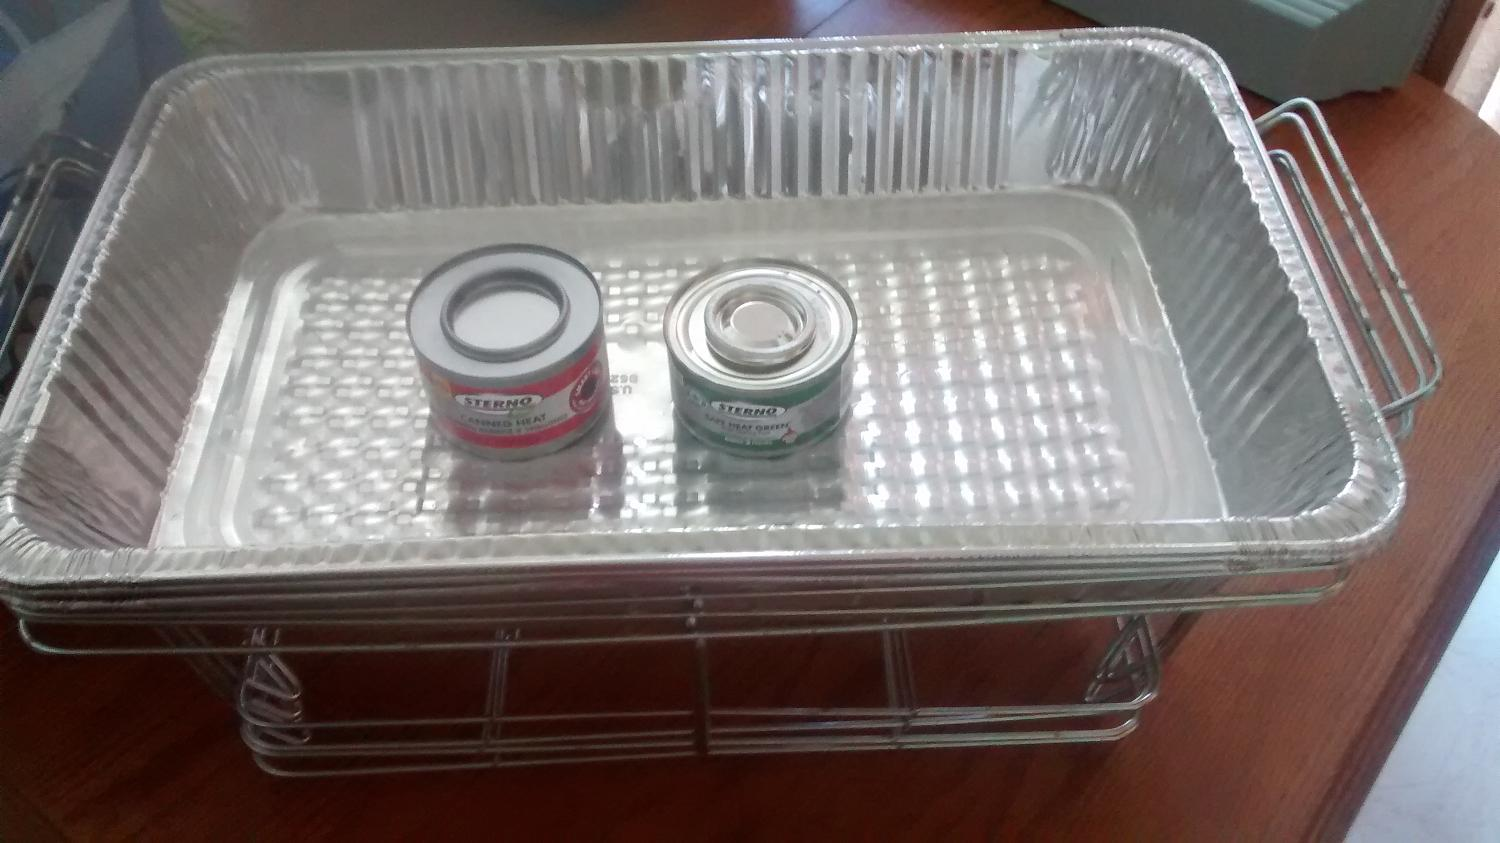 How To Store Already Opened Cans Of Food